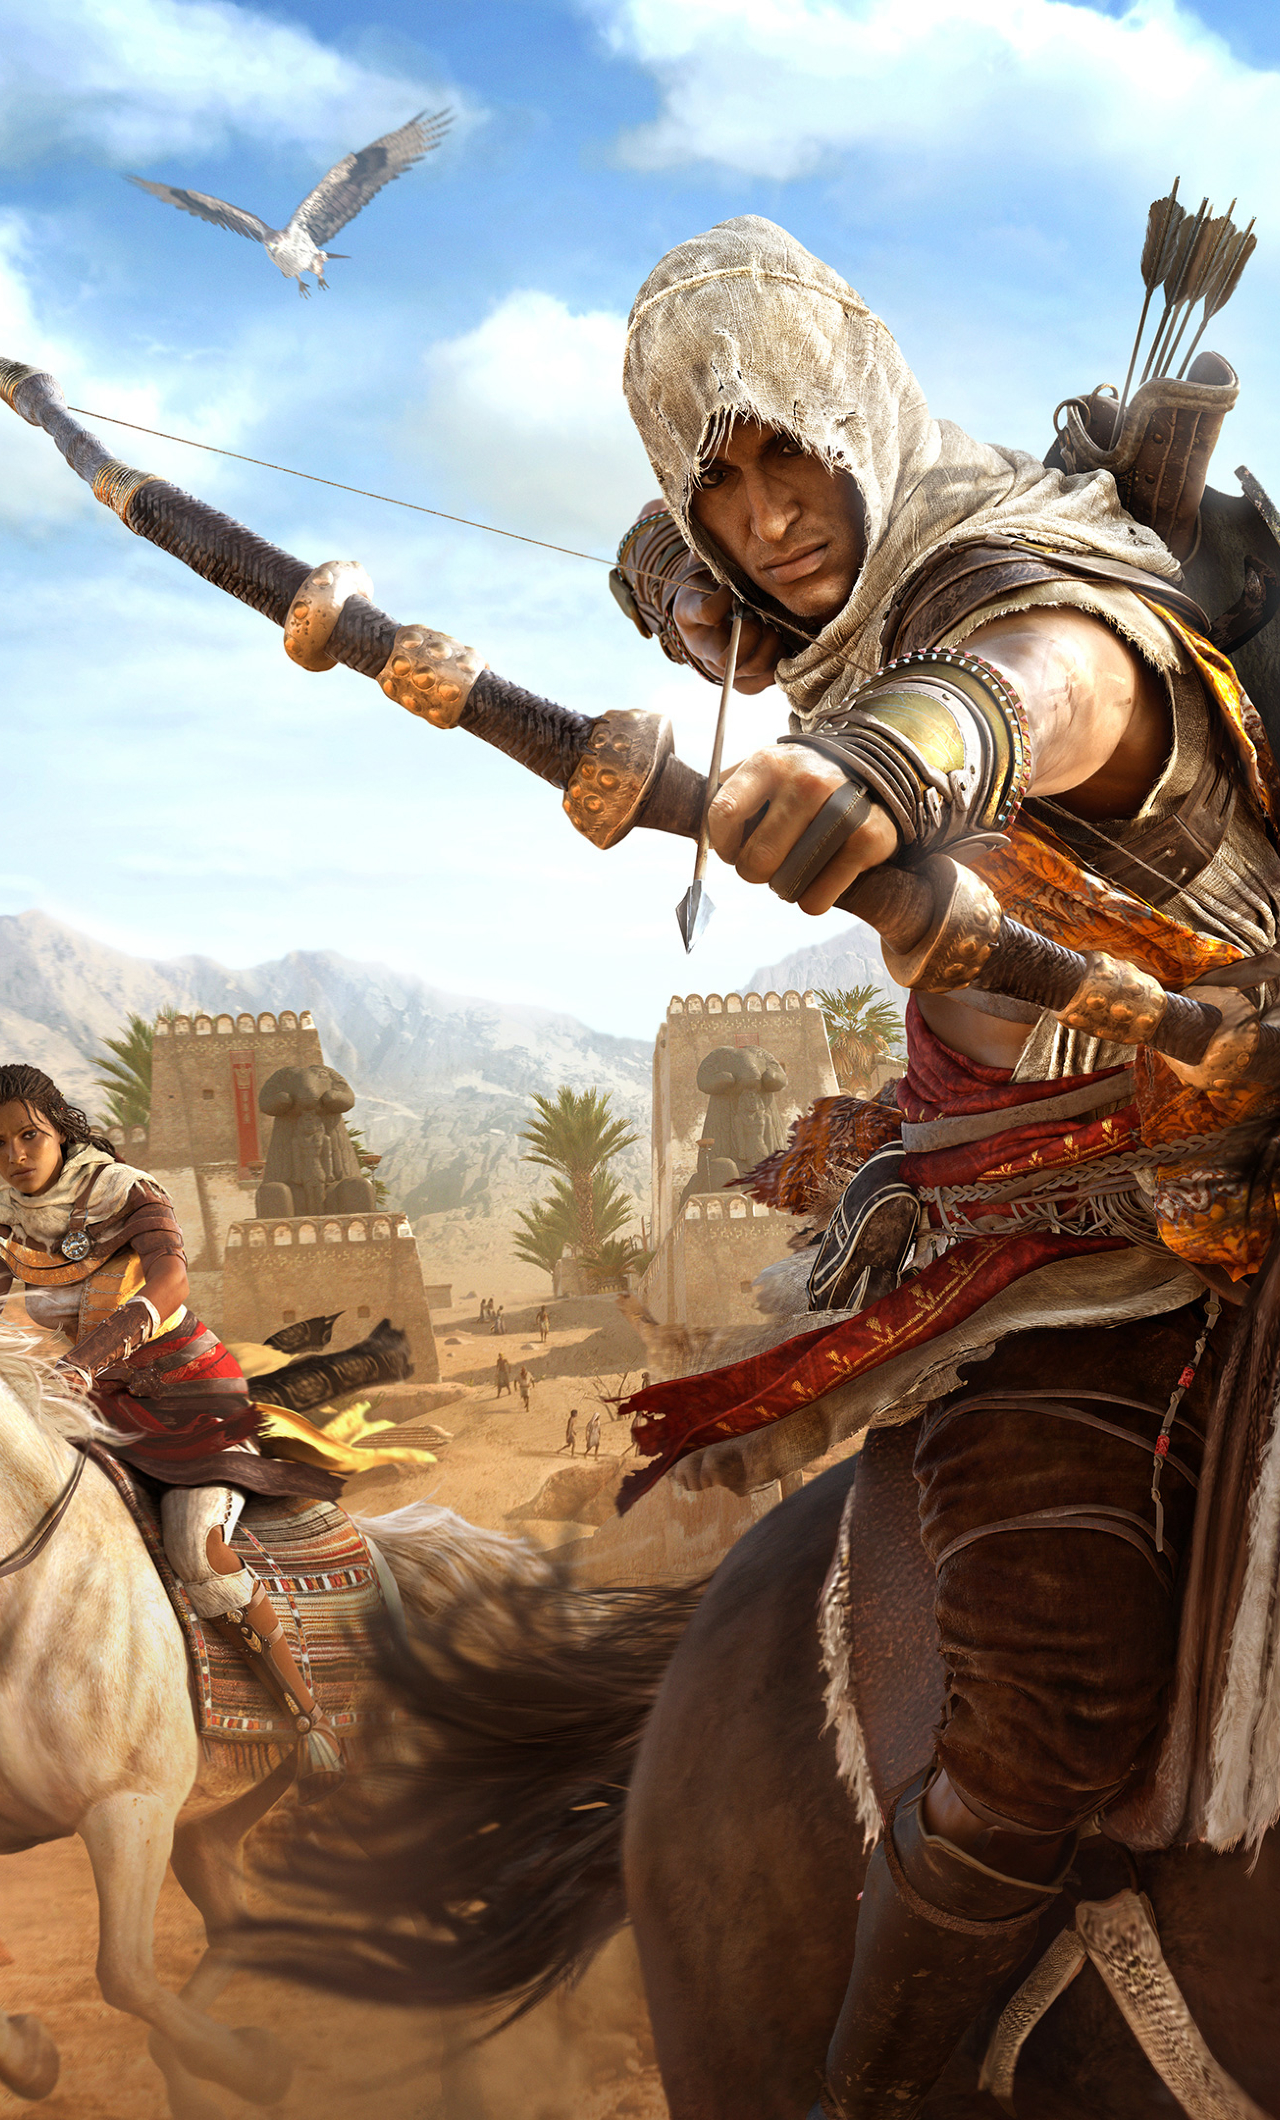 Assassin Creed Origins Wallpaper 4k For Mobile 1280x2120